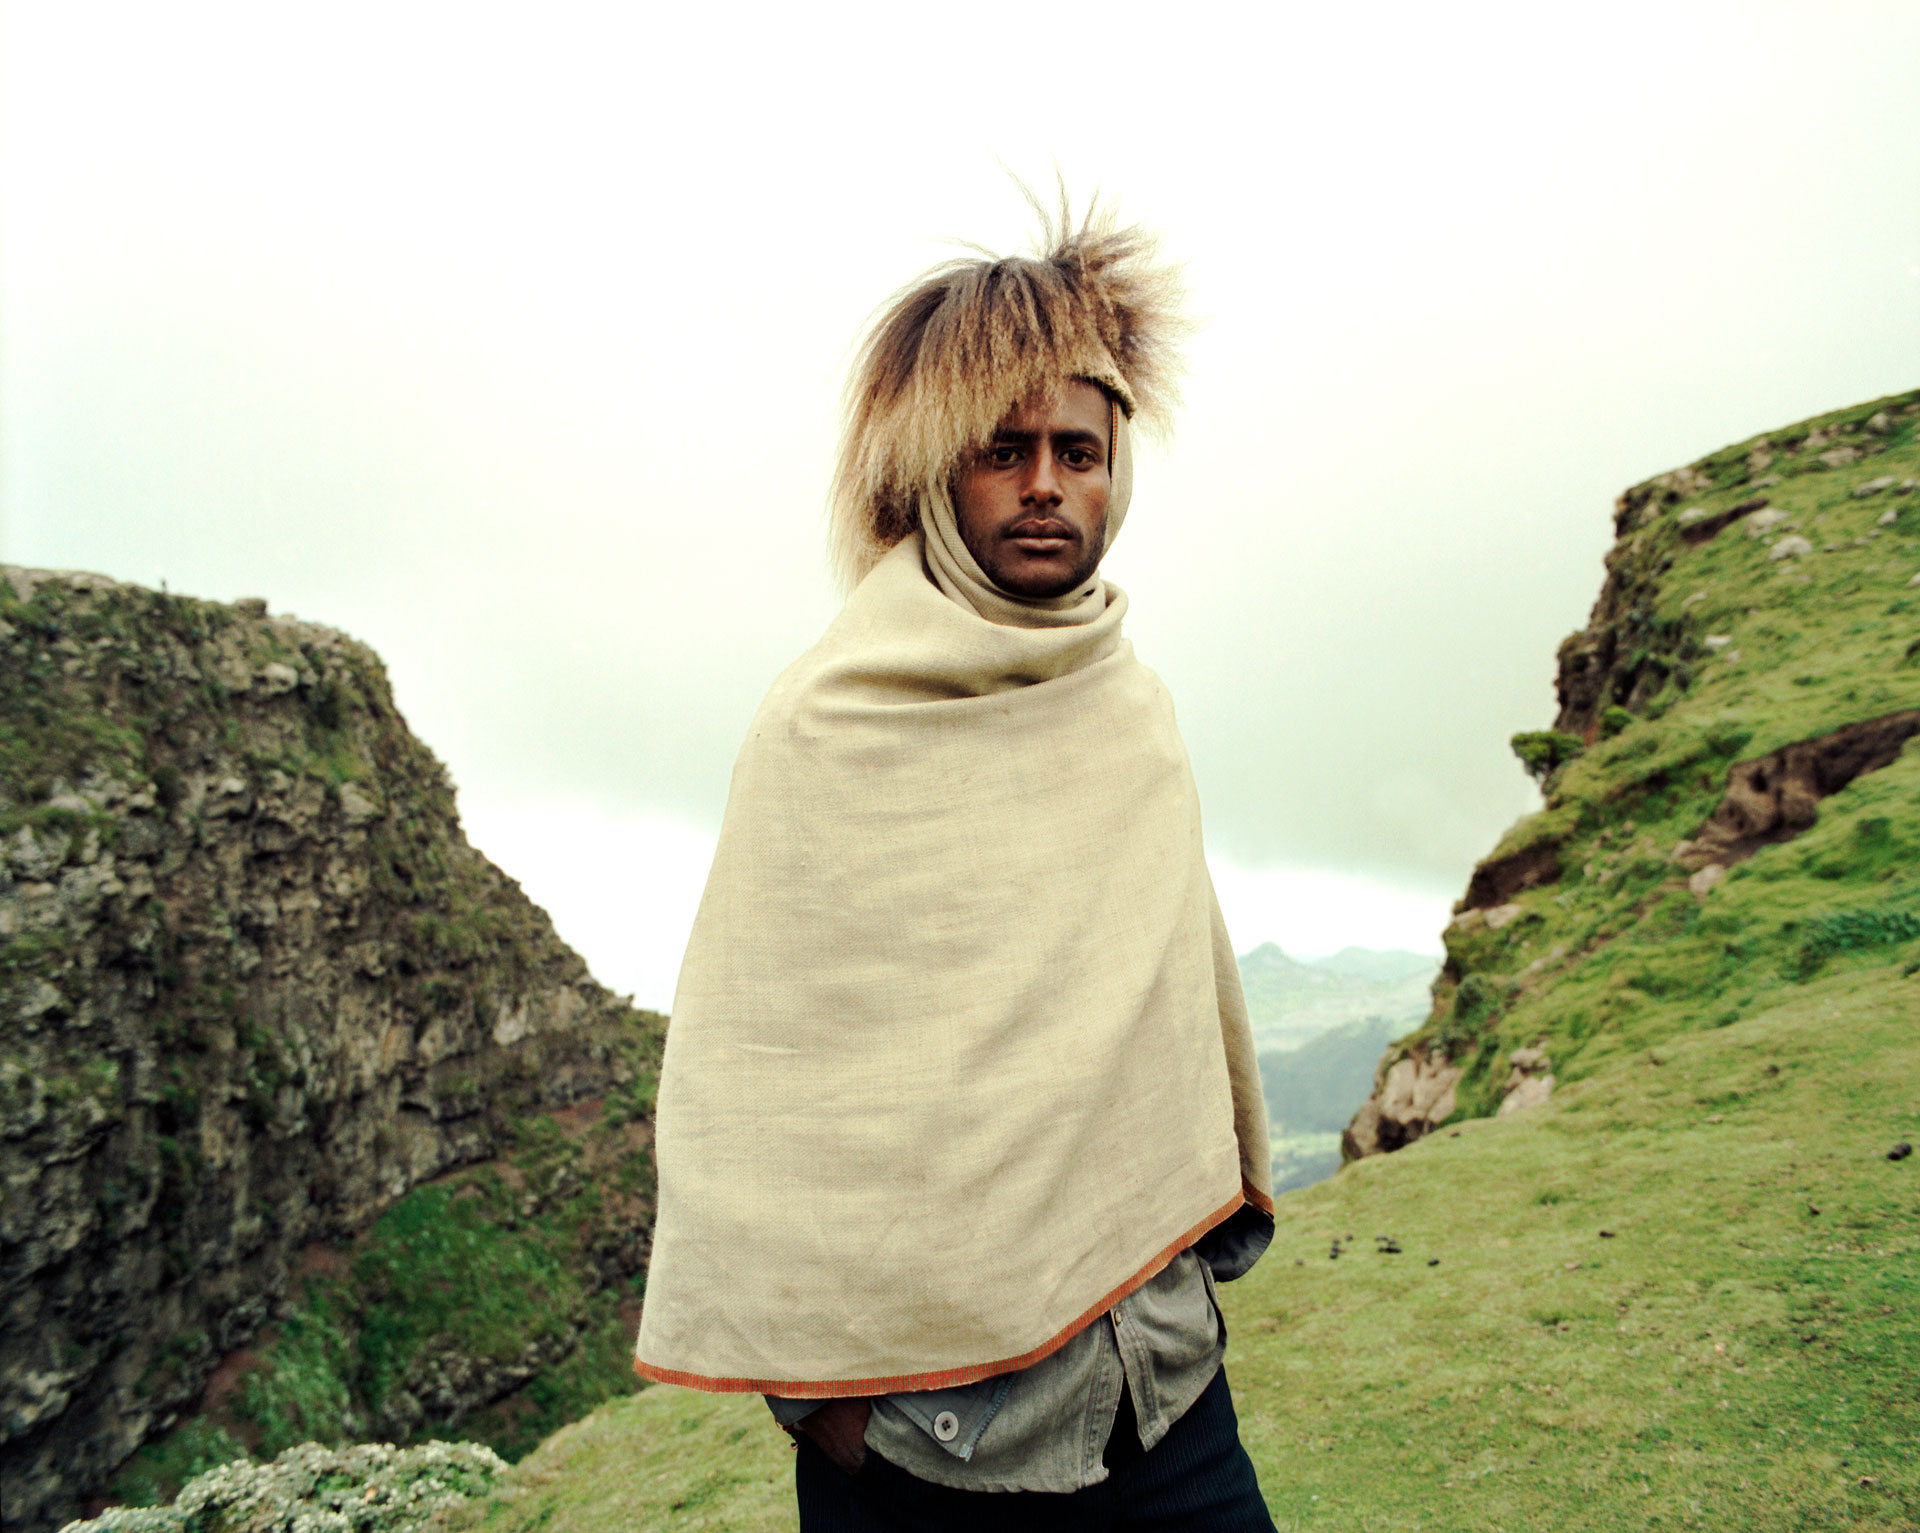 Jason Florio photography - color image a Ethiopian hill tribe man, in a baboon fur hat, on the edge of a cliff, in the Ethiopian Highlands